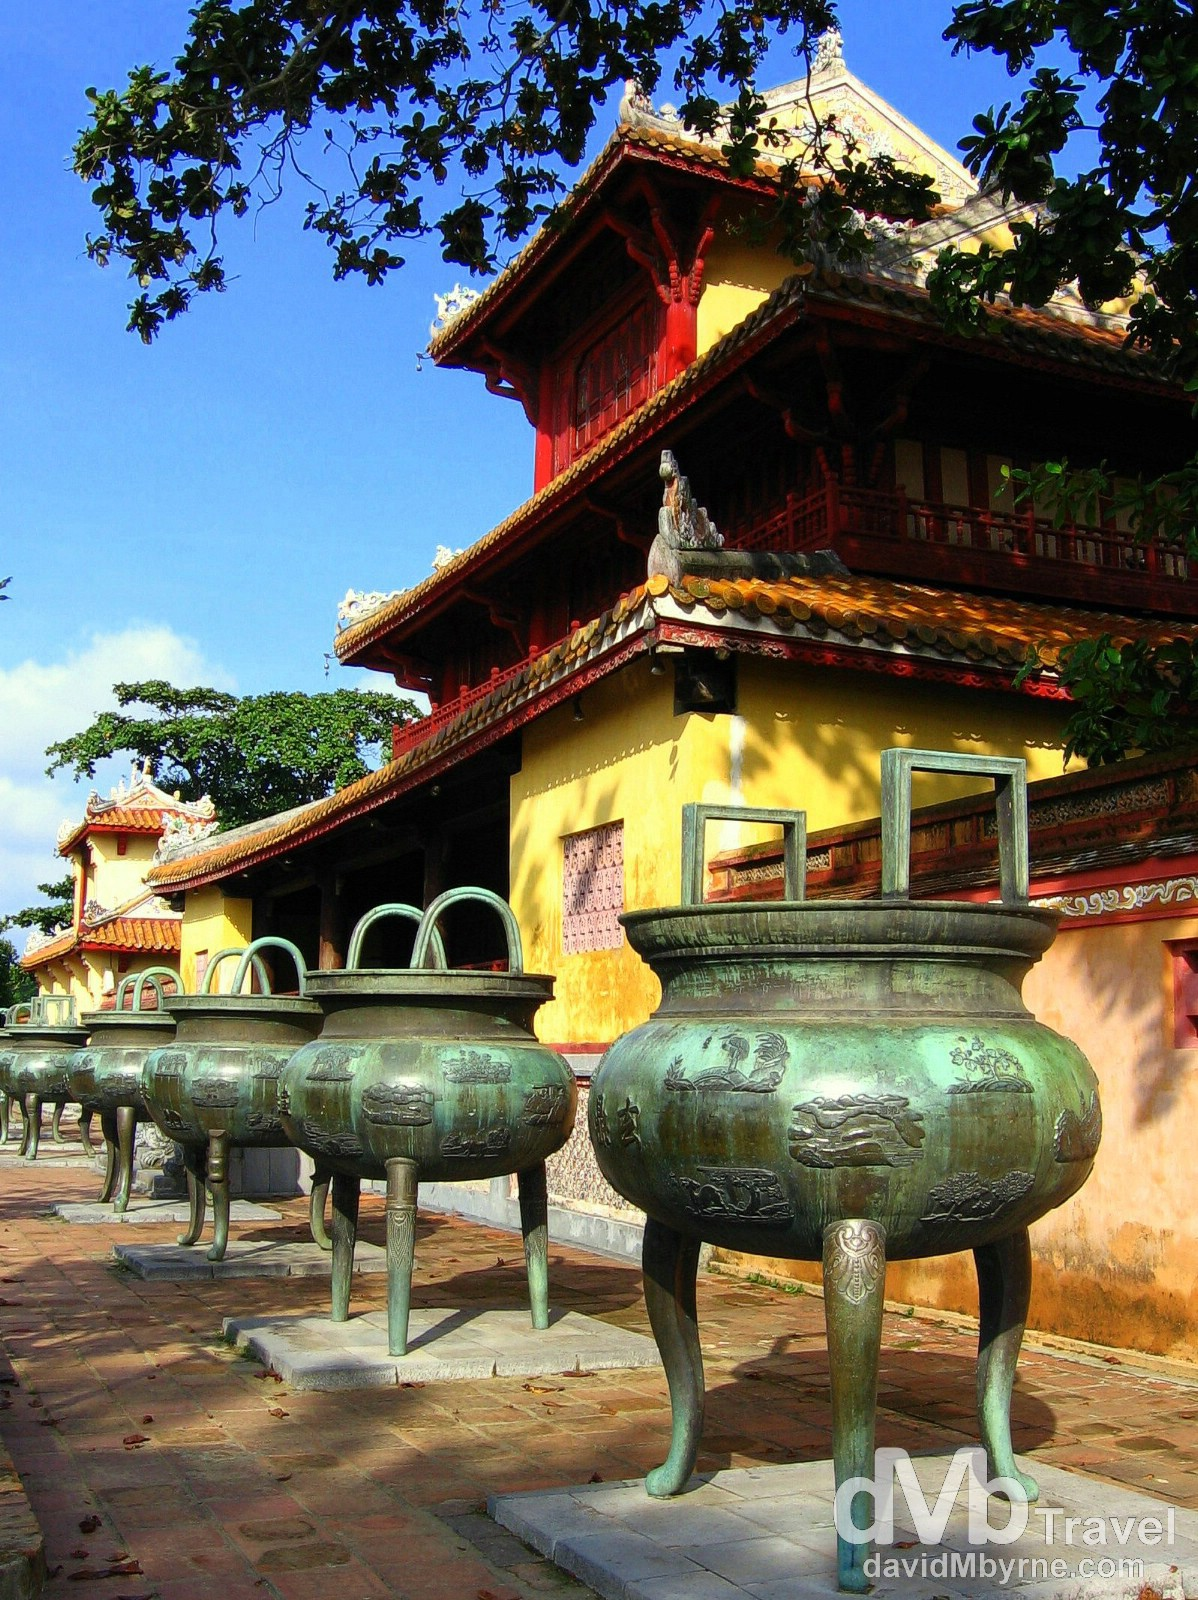 Some of the 9 Dynastic Urns of the UNESCO-listed Citadel in Hue, Central Vietnam. September 7th, 2005.